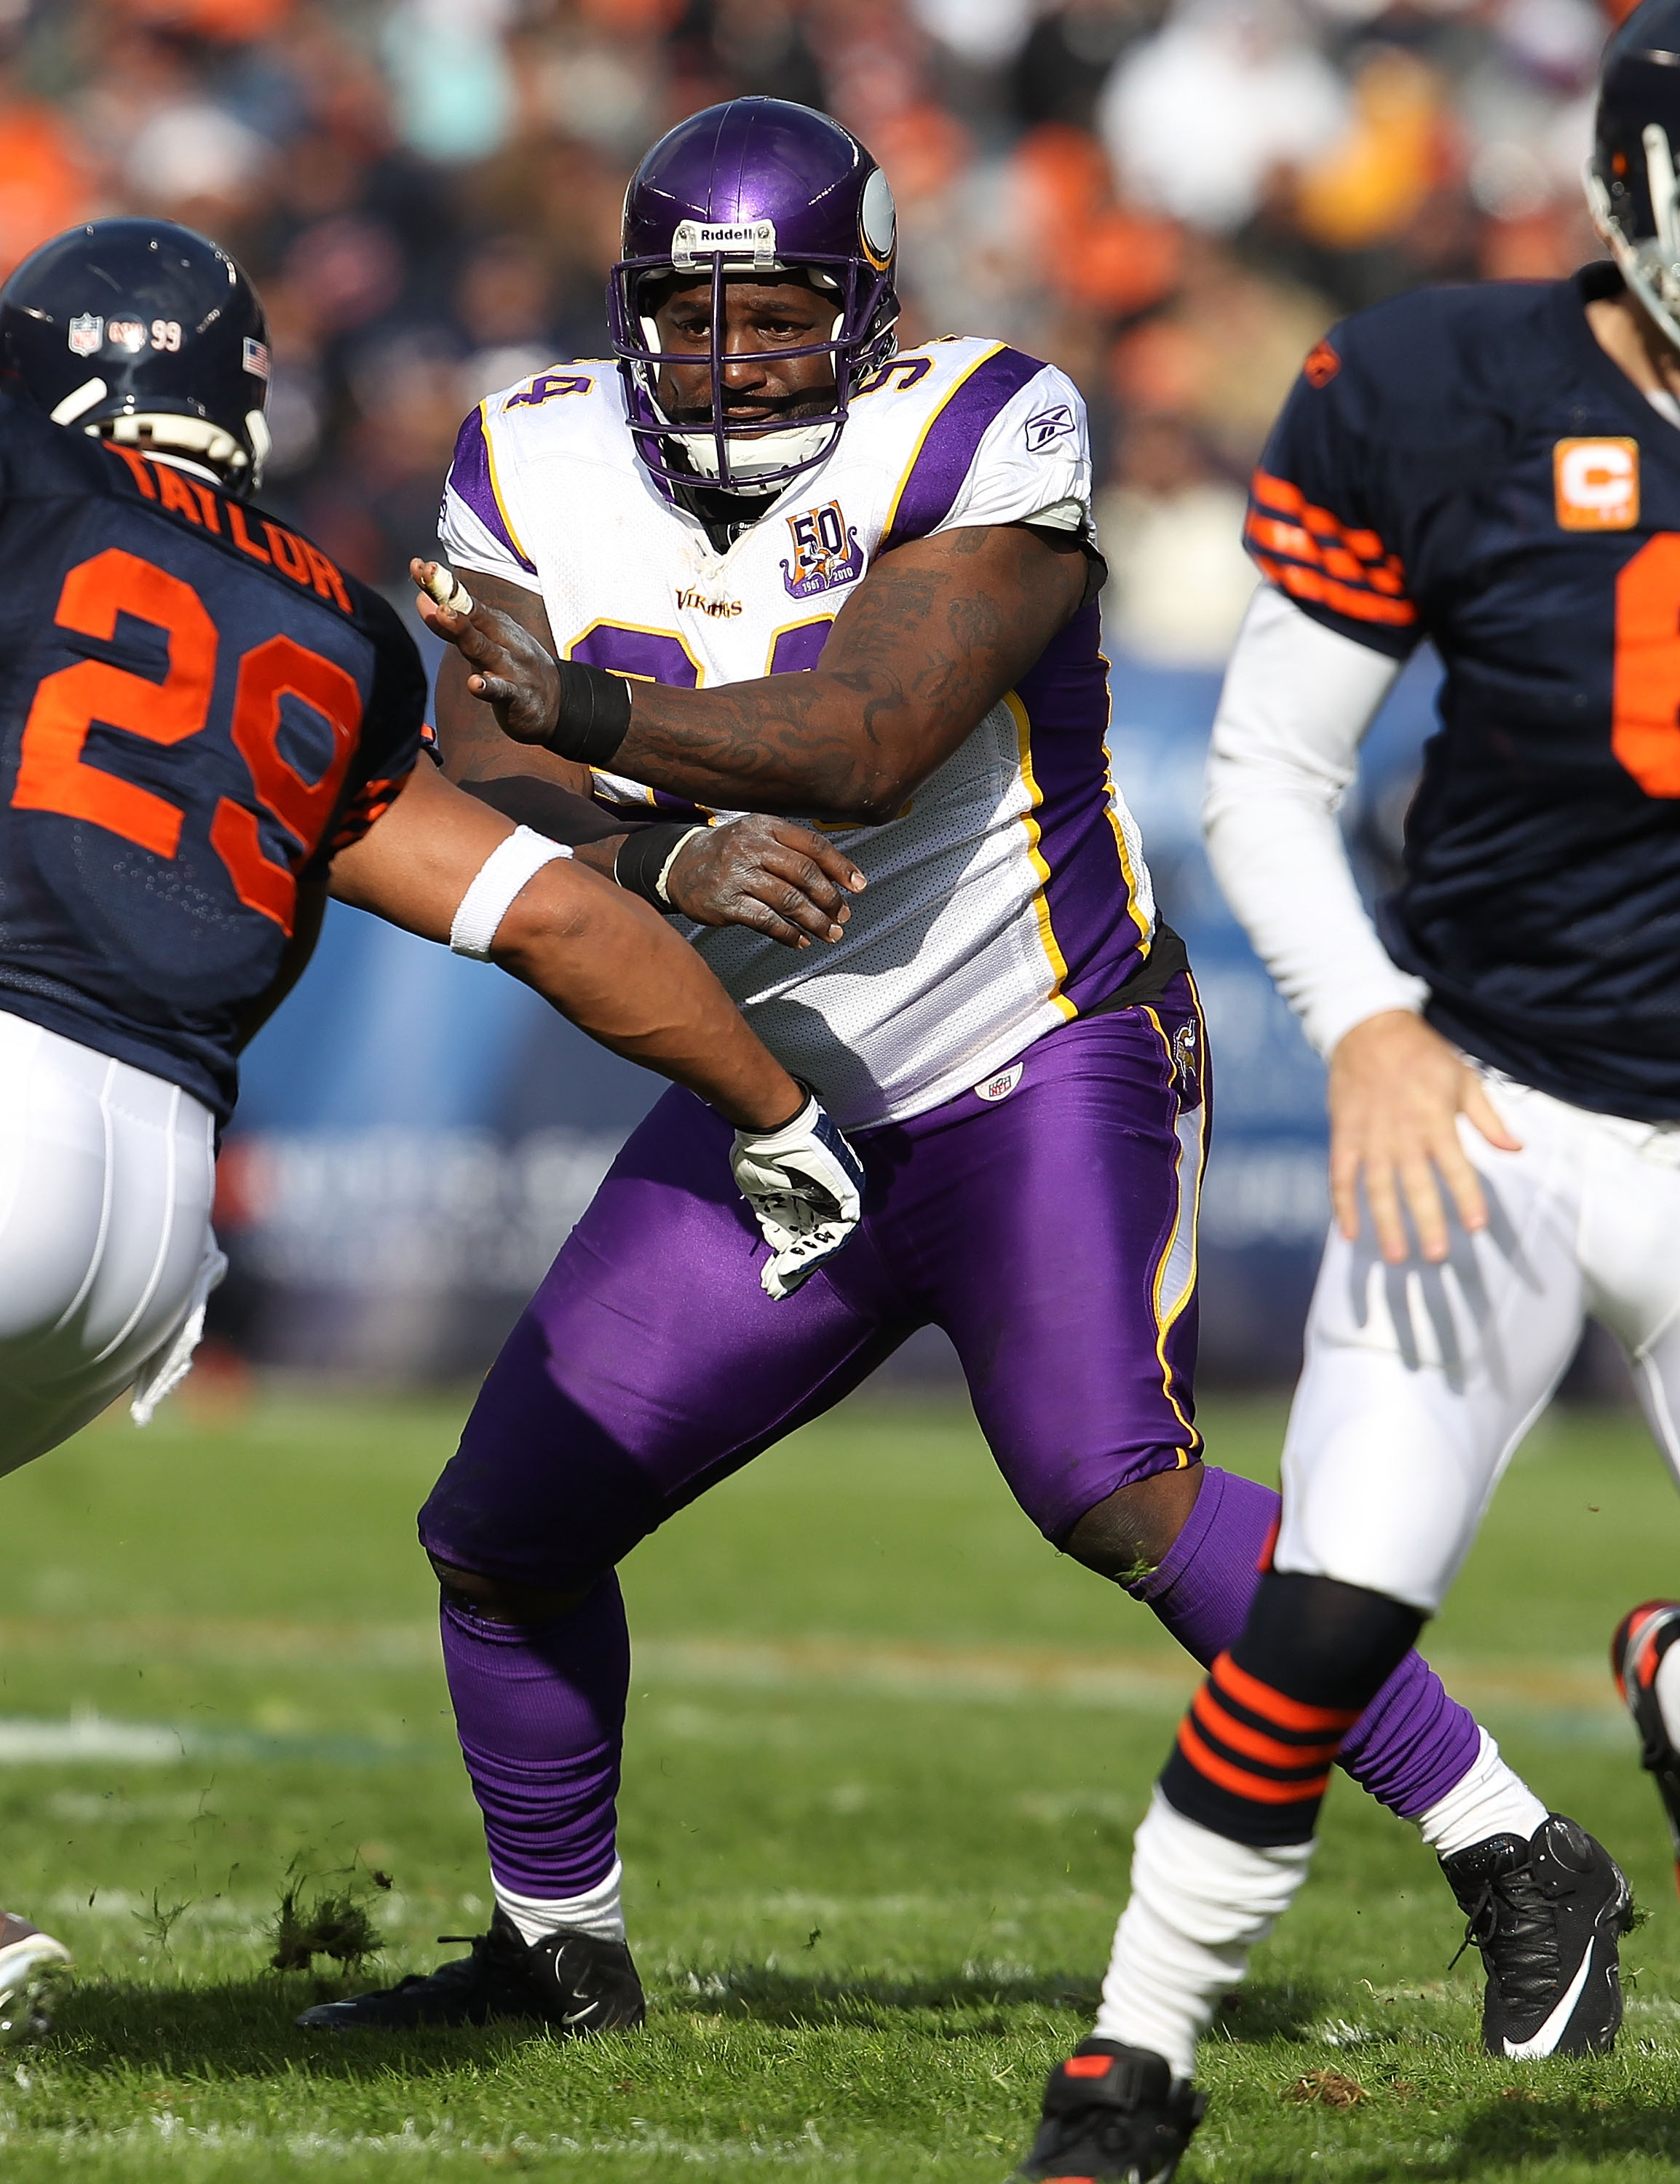 CHICAGO - NOVEMBER 14: Pat Williams #94 of the Minnesota Vikings rushes against Chester Taylor #29 of the Chicago Bears at Soldier Field on November 14, 2010 in Chicago, Illinois. The Bears defeated the Vikings 27-13. (Photo by Jonathan Daniel/Getty Image